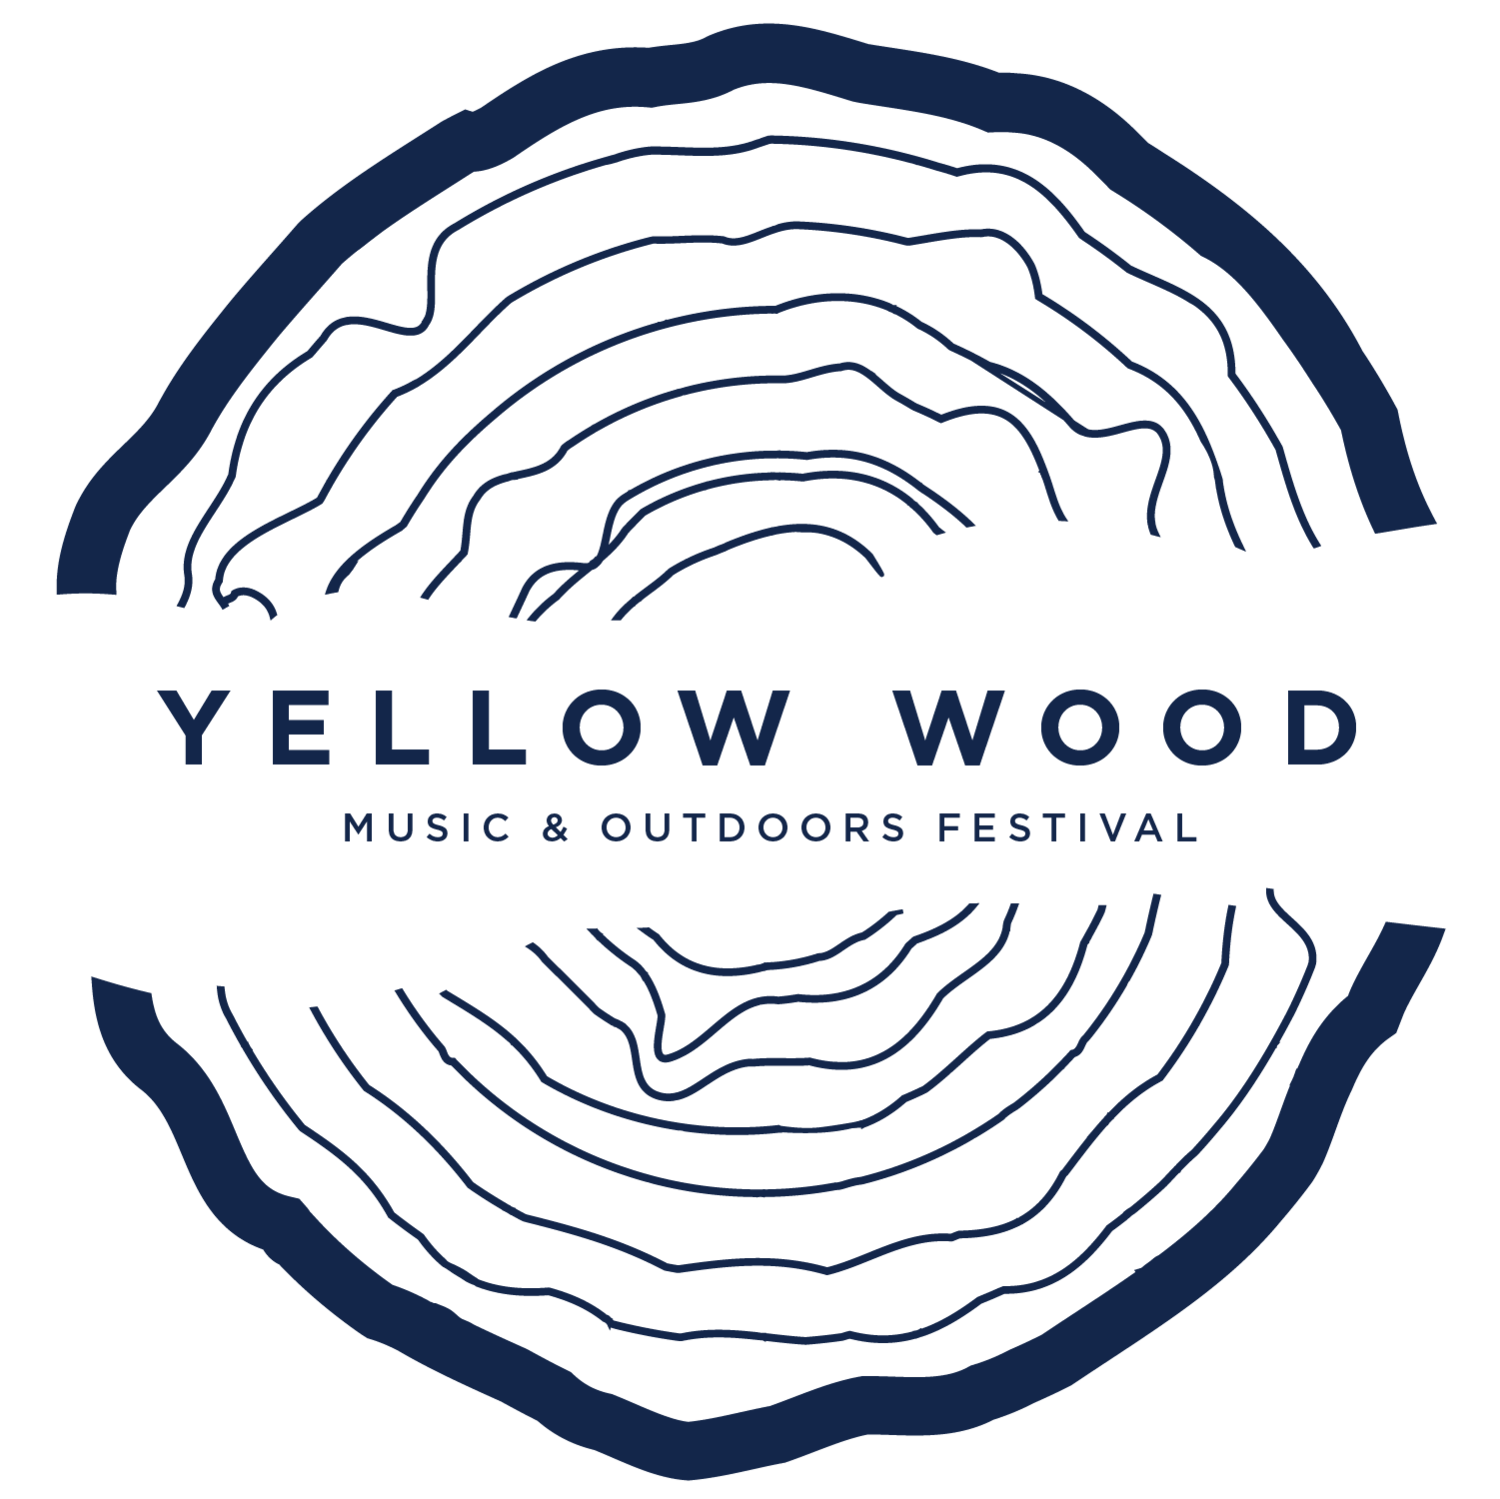 Yellow Wood